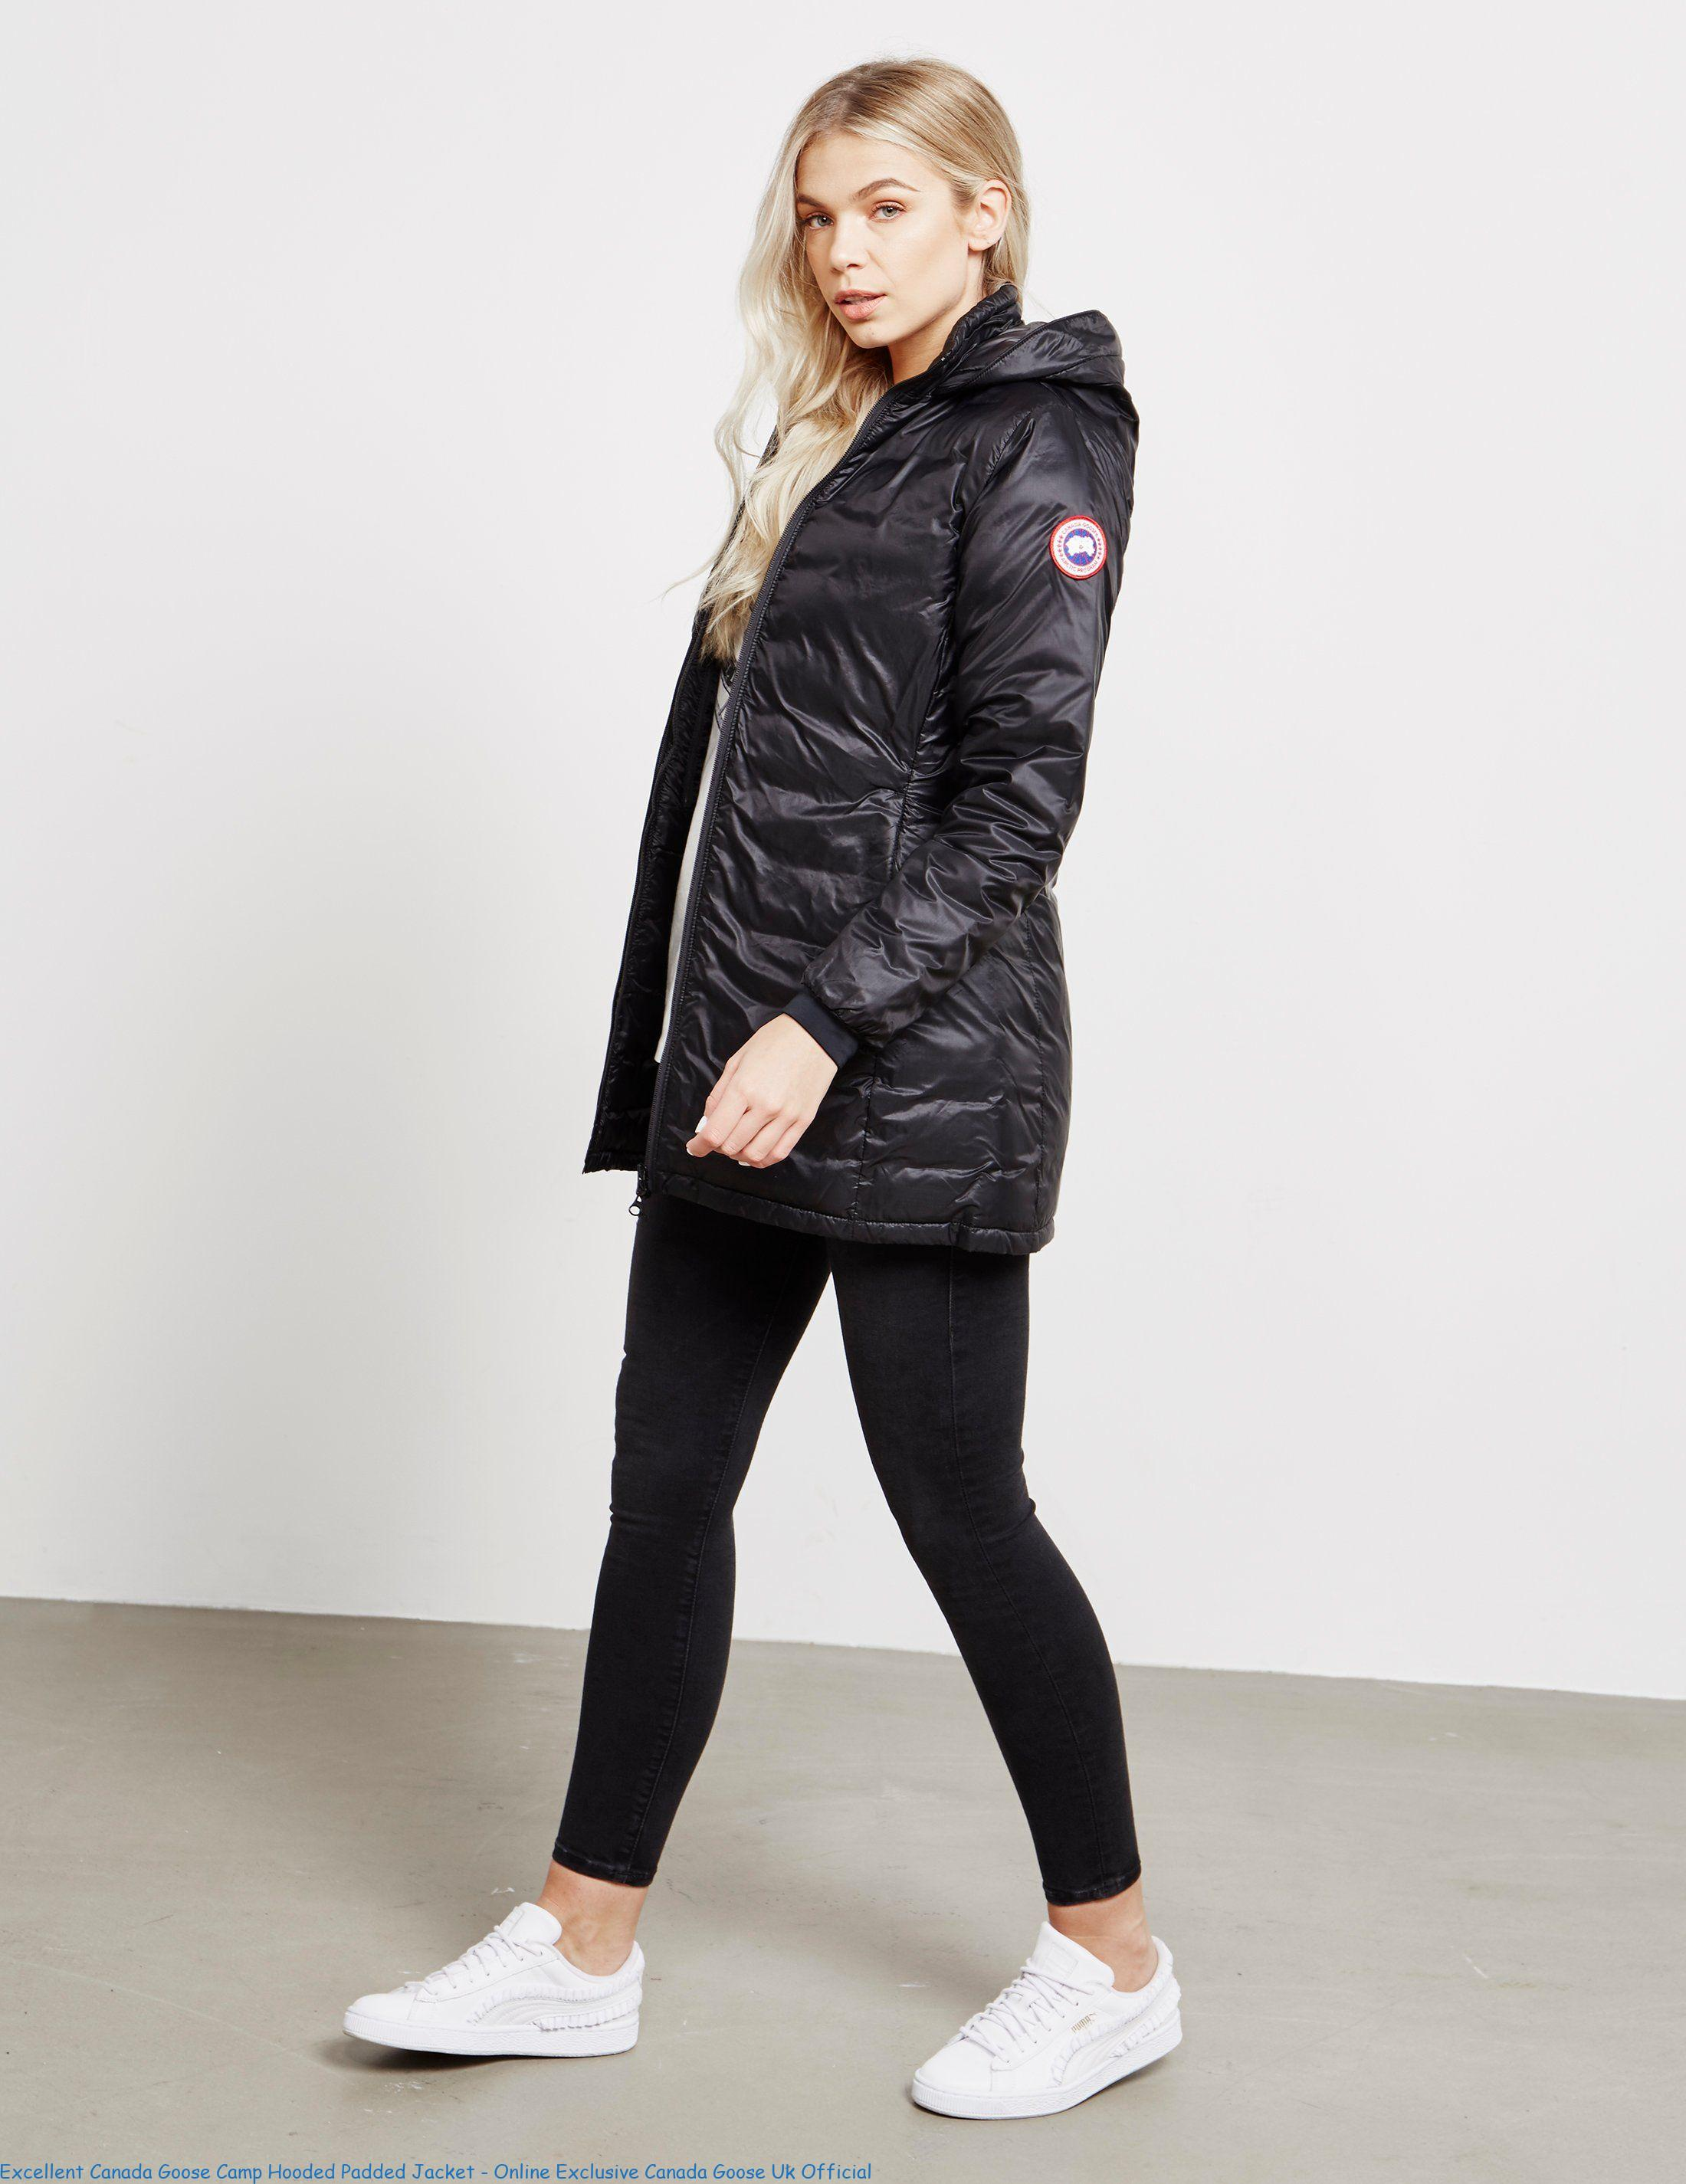 Excellent Canada Goose Camp Hooded Padded Jacket Online Exclusive Canada Goose Uk Official